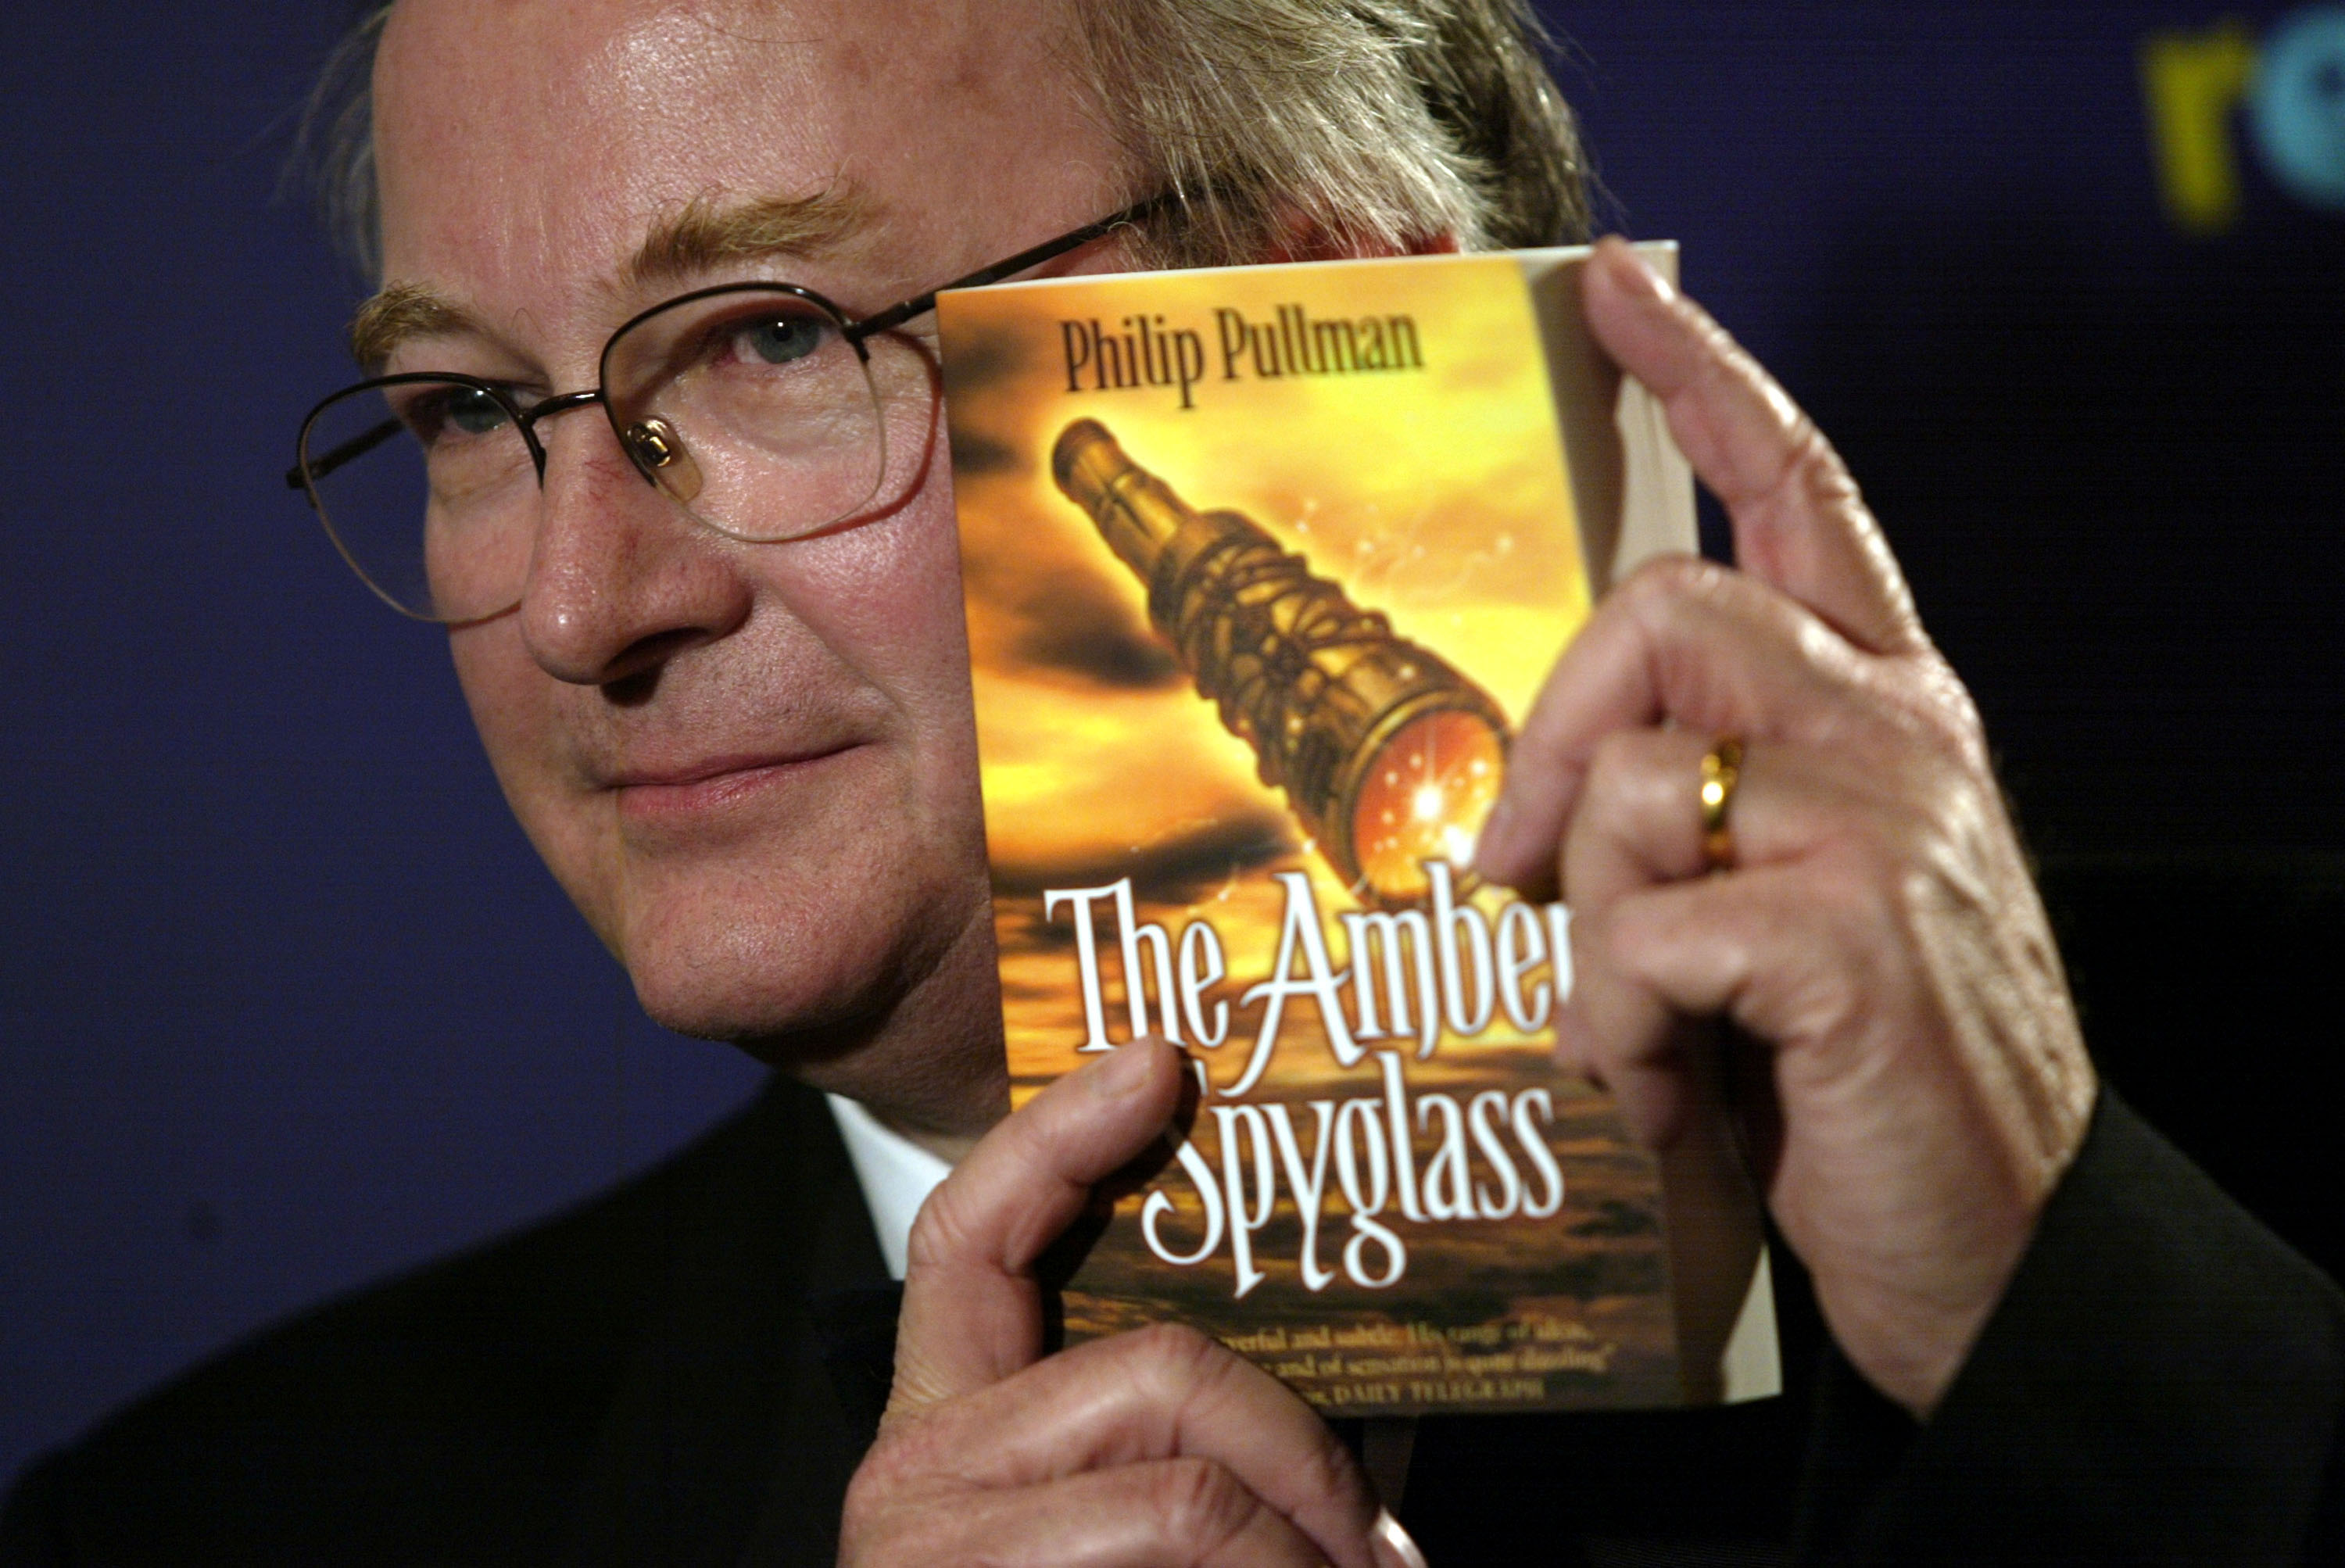 Author Philip Pullman holds up his book, ''The Amber Spyglass'', after winning the Whitbread Book of the Year Award January 22, 2002 in London.